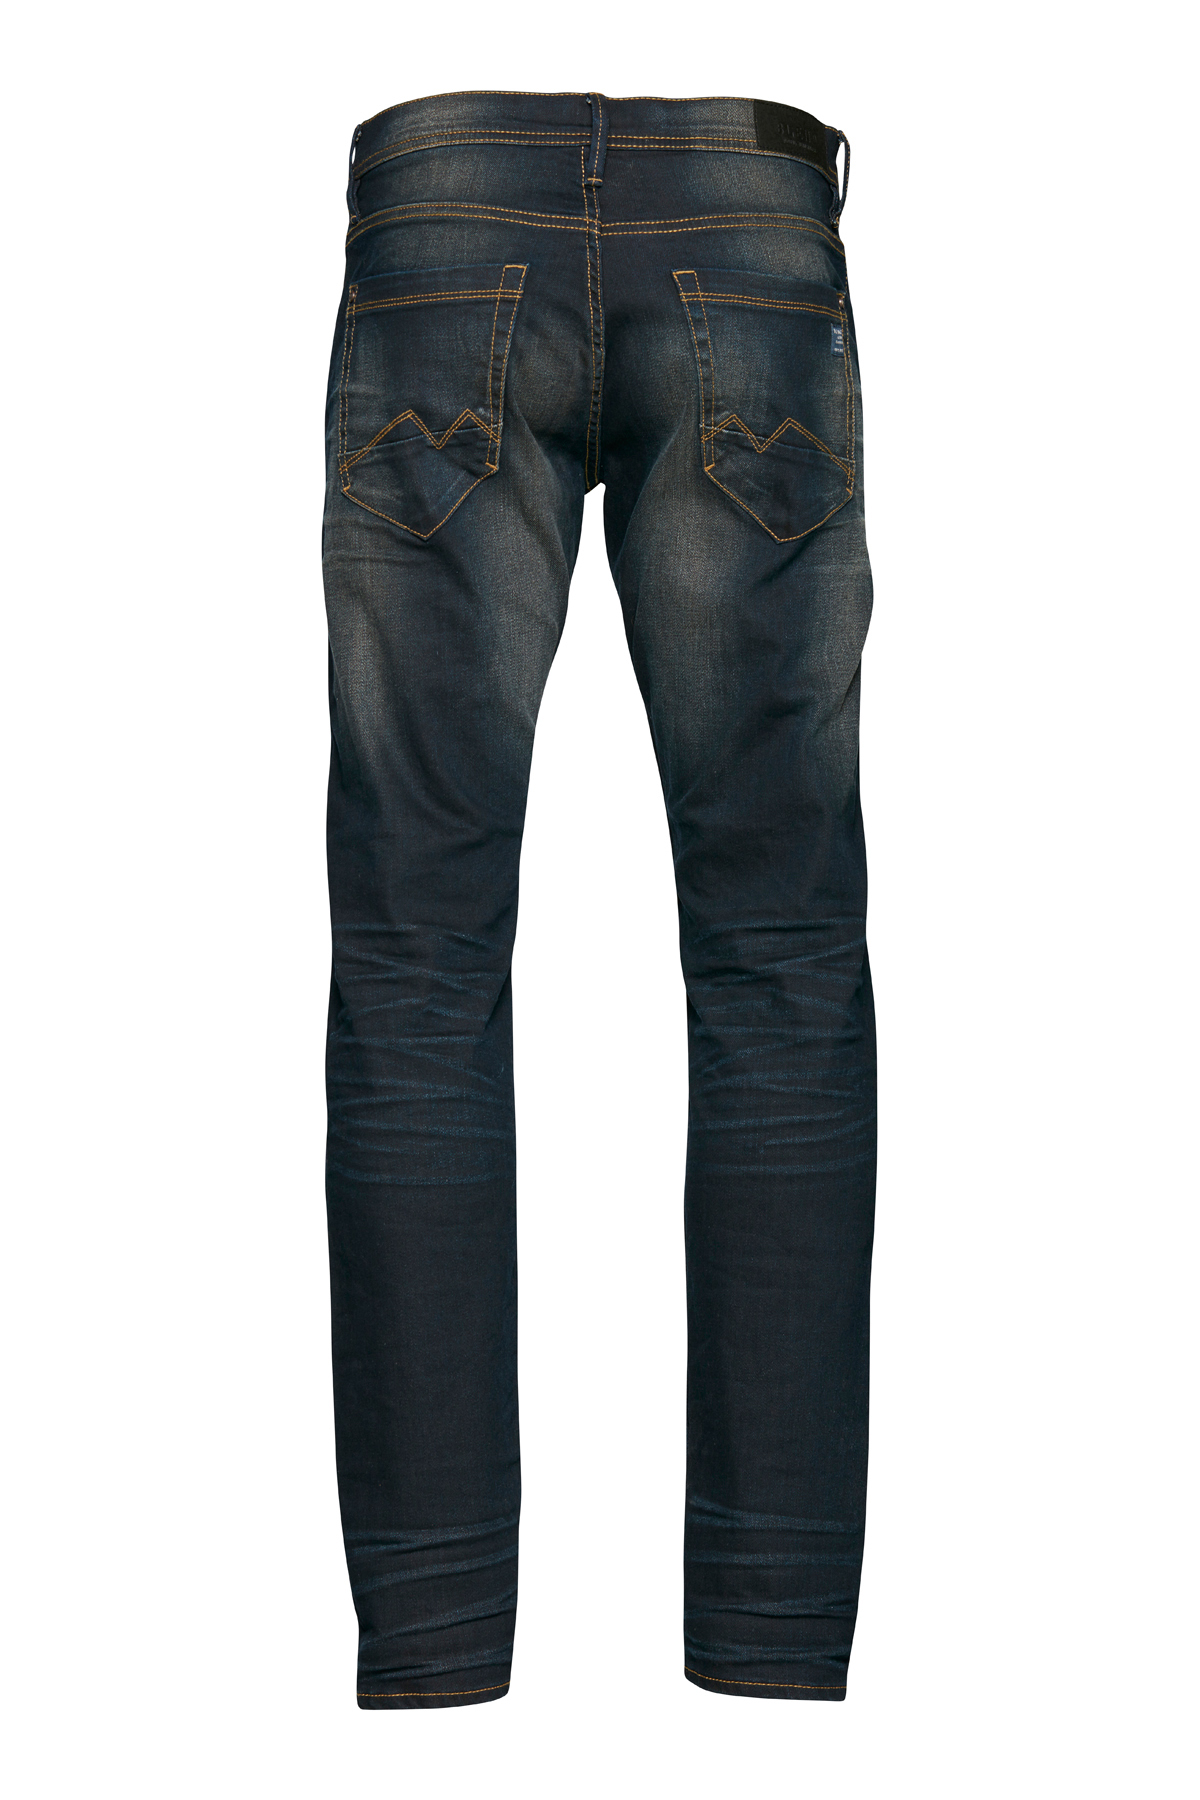 Denim Middle blue Twister jeans fra Blend He – Køb Denim Middle blue Twister jeans fra str. 31-36 her